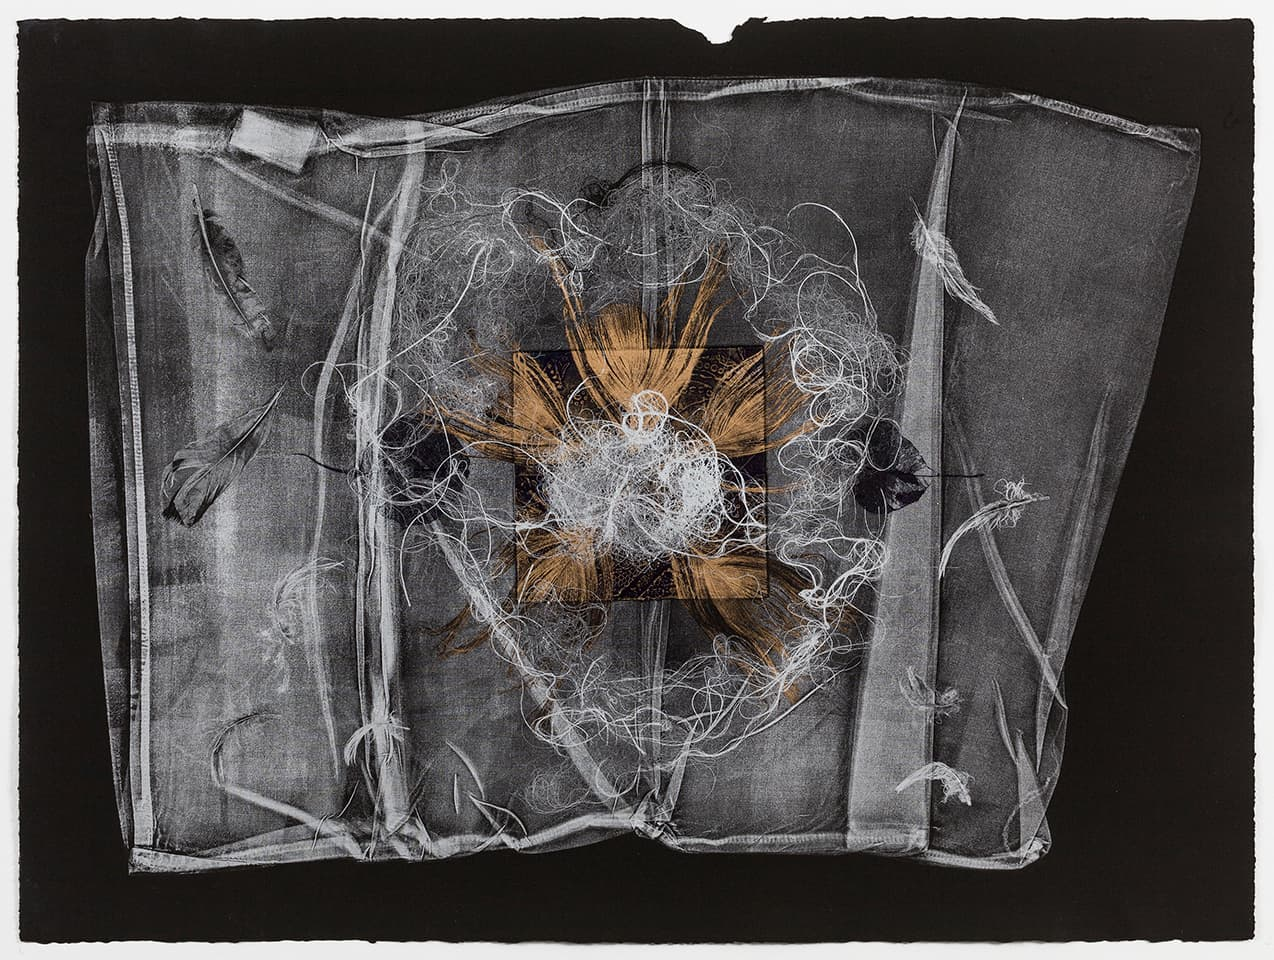 <strong>The Dark Self 3</strong>, Susan Aldworth, monoprint, 56 x 76 cms, one of a series 18 prints, 2017. Photograph by Peter Abrahams.